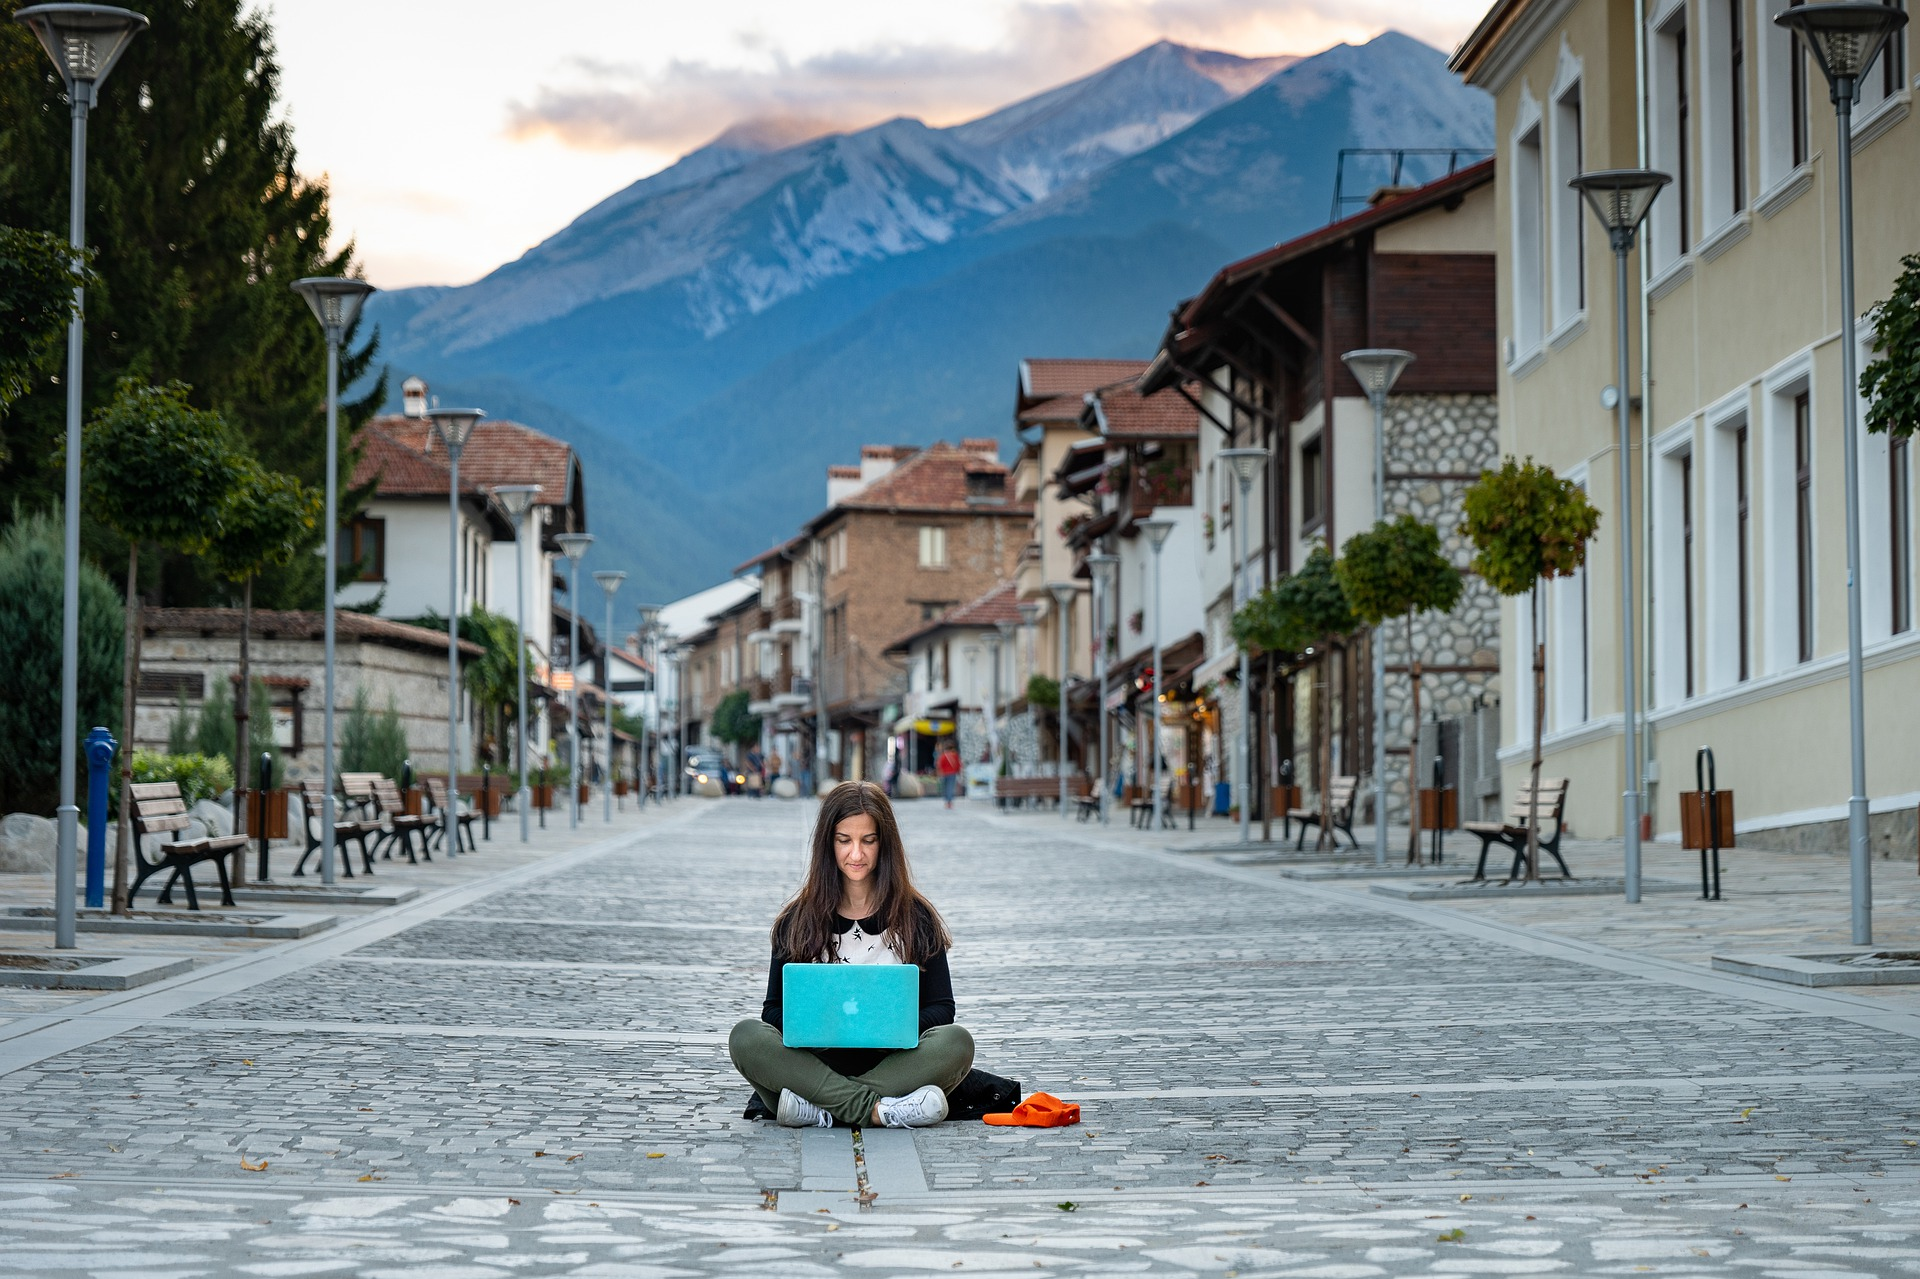 Tips on Becoming a Digital Nomad 7 Tips on Becoming a Digital Nomad